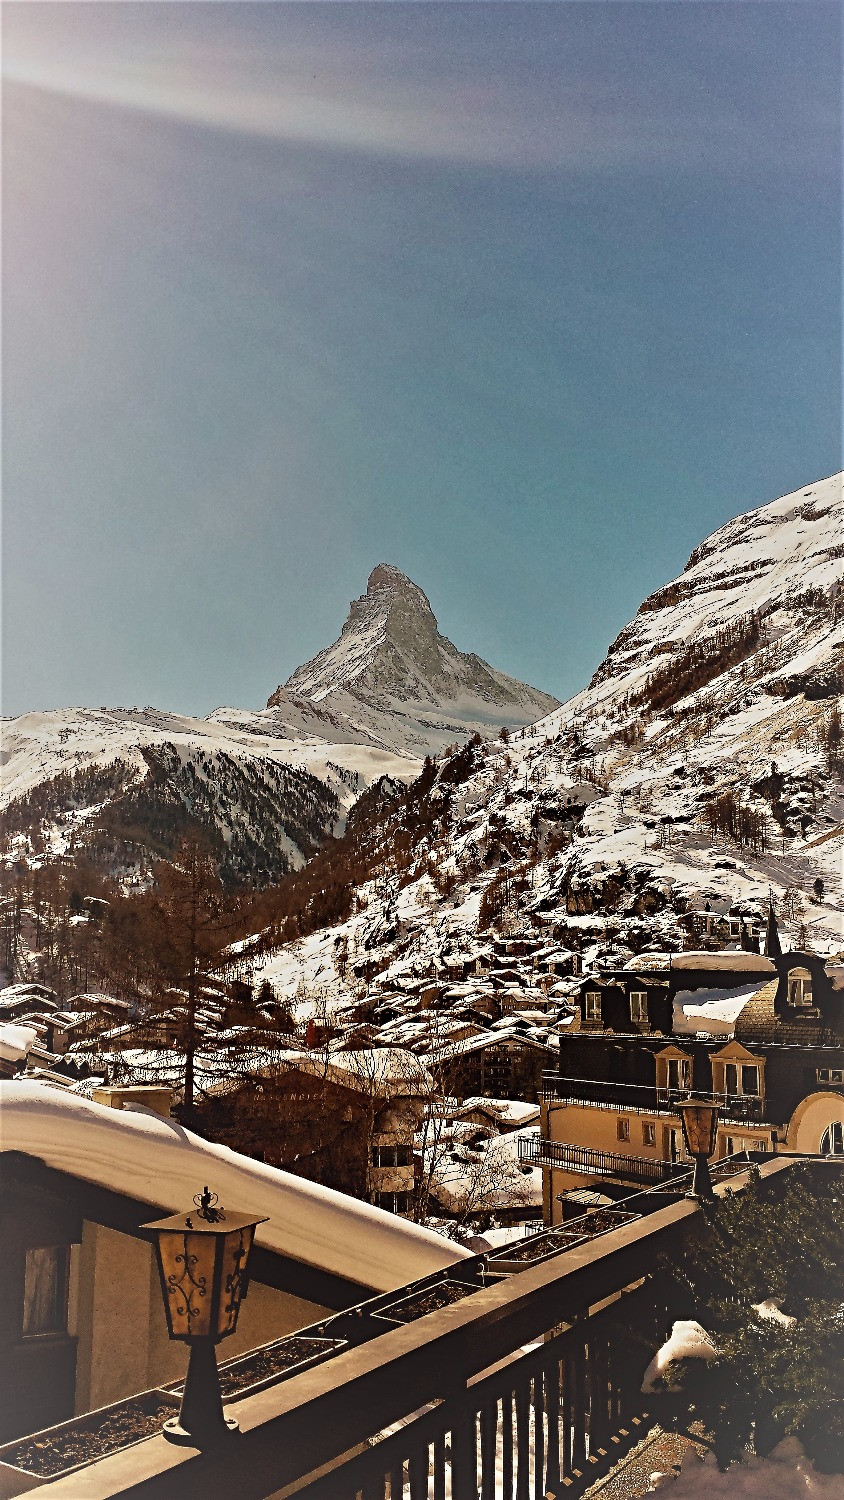 View of Matterhorn from Hotel Bella Vista, Zermatt